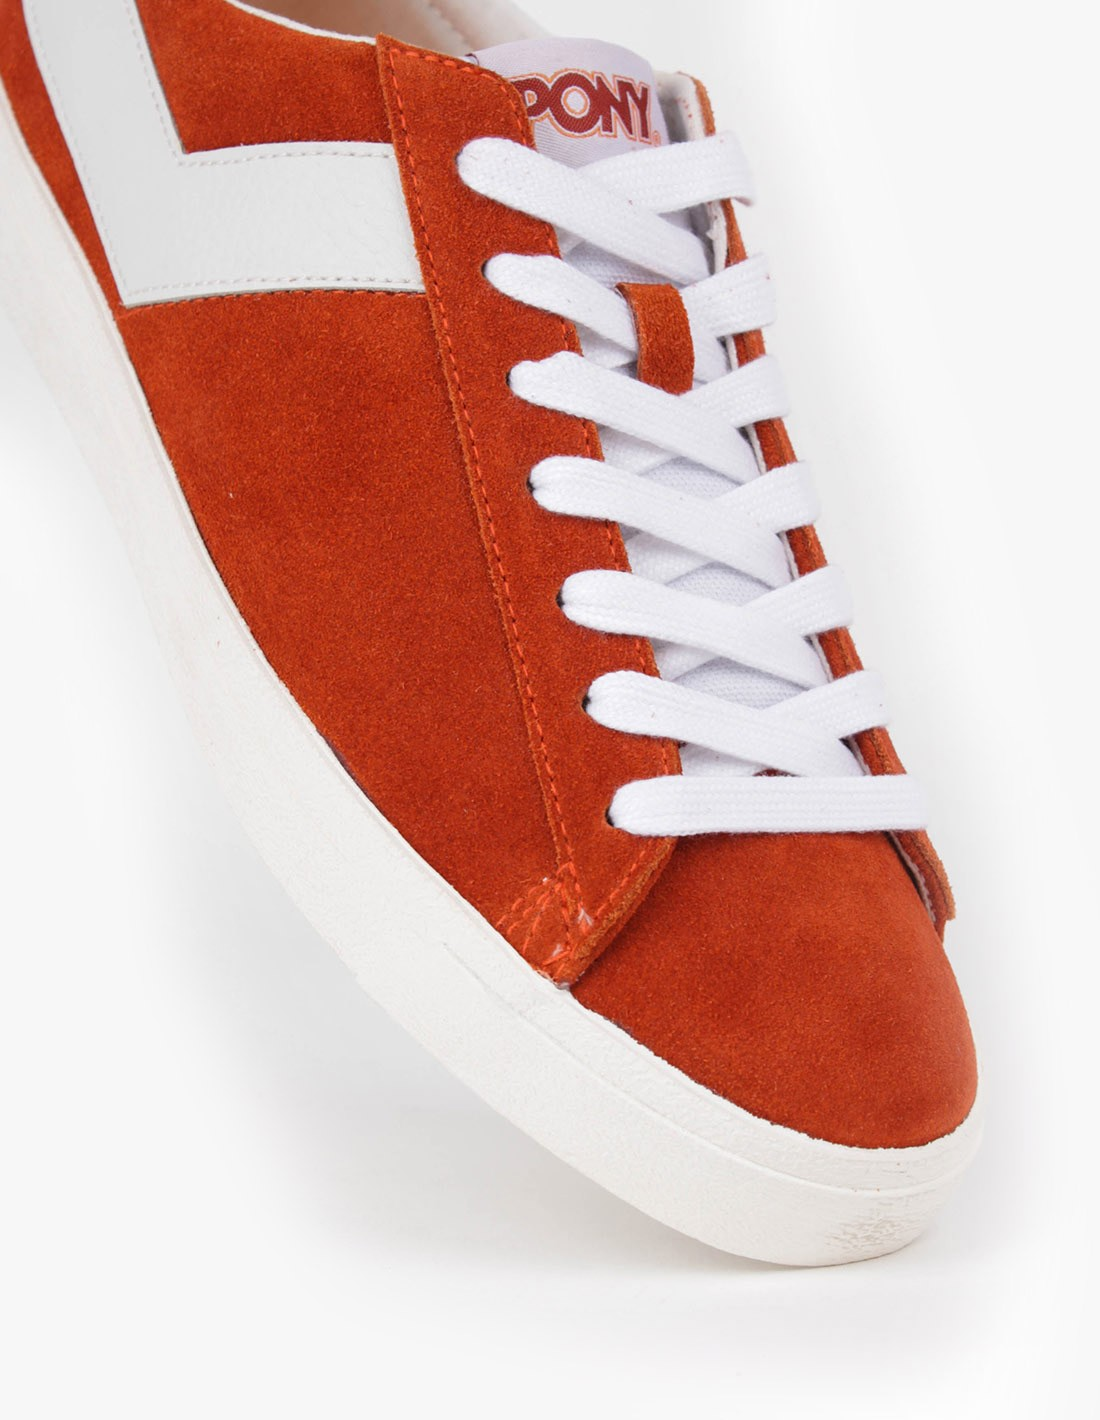 PONY Topstar Suede Ox in Burnt Ocre